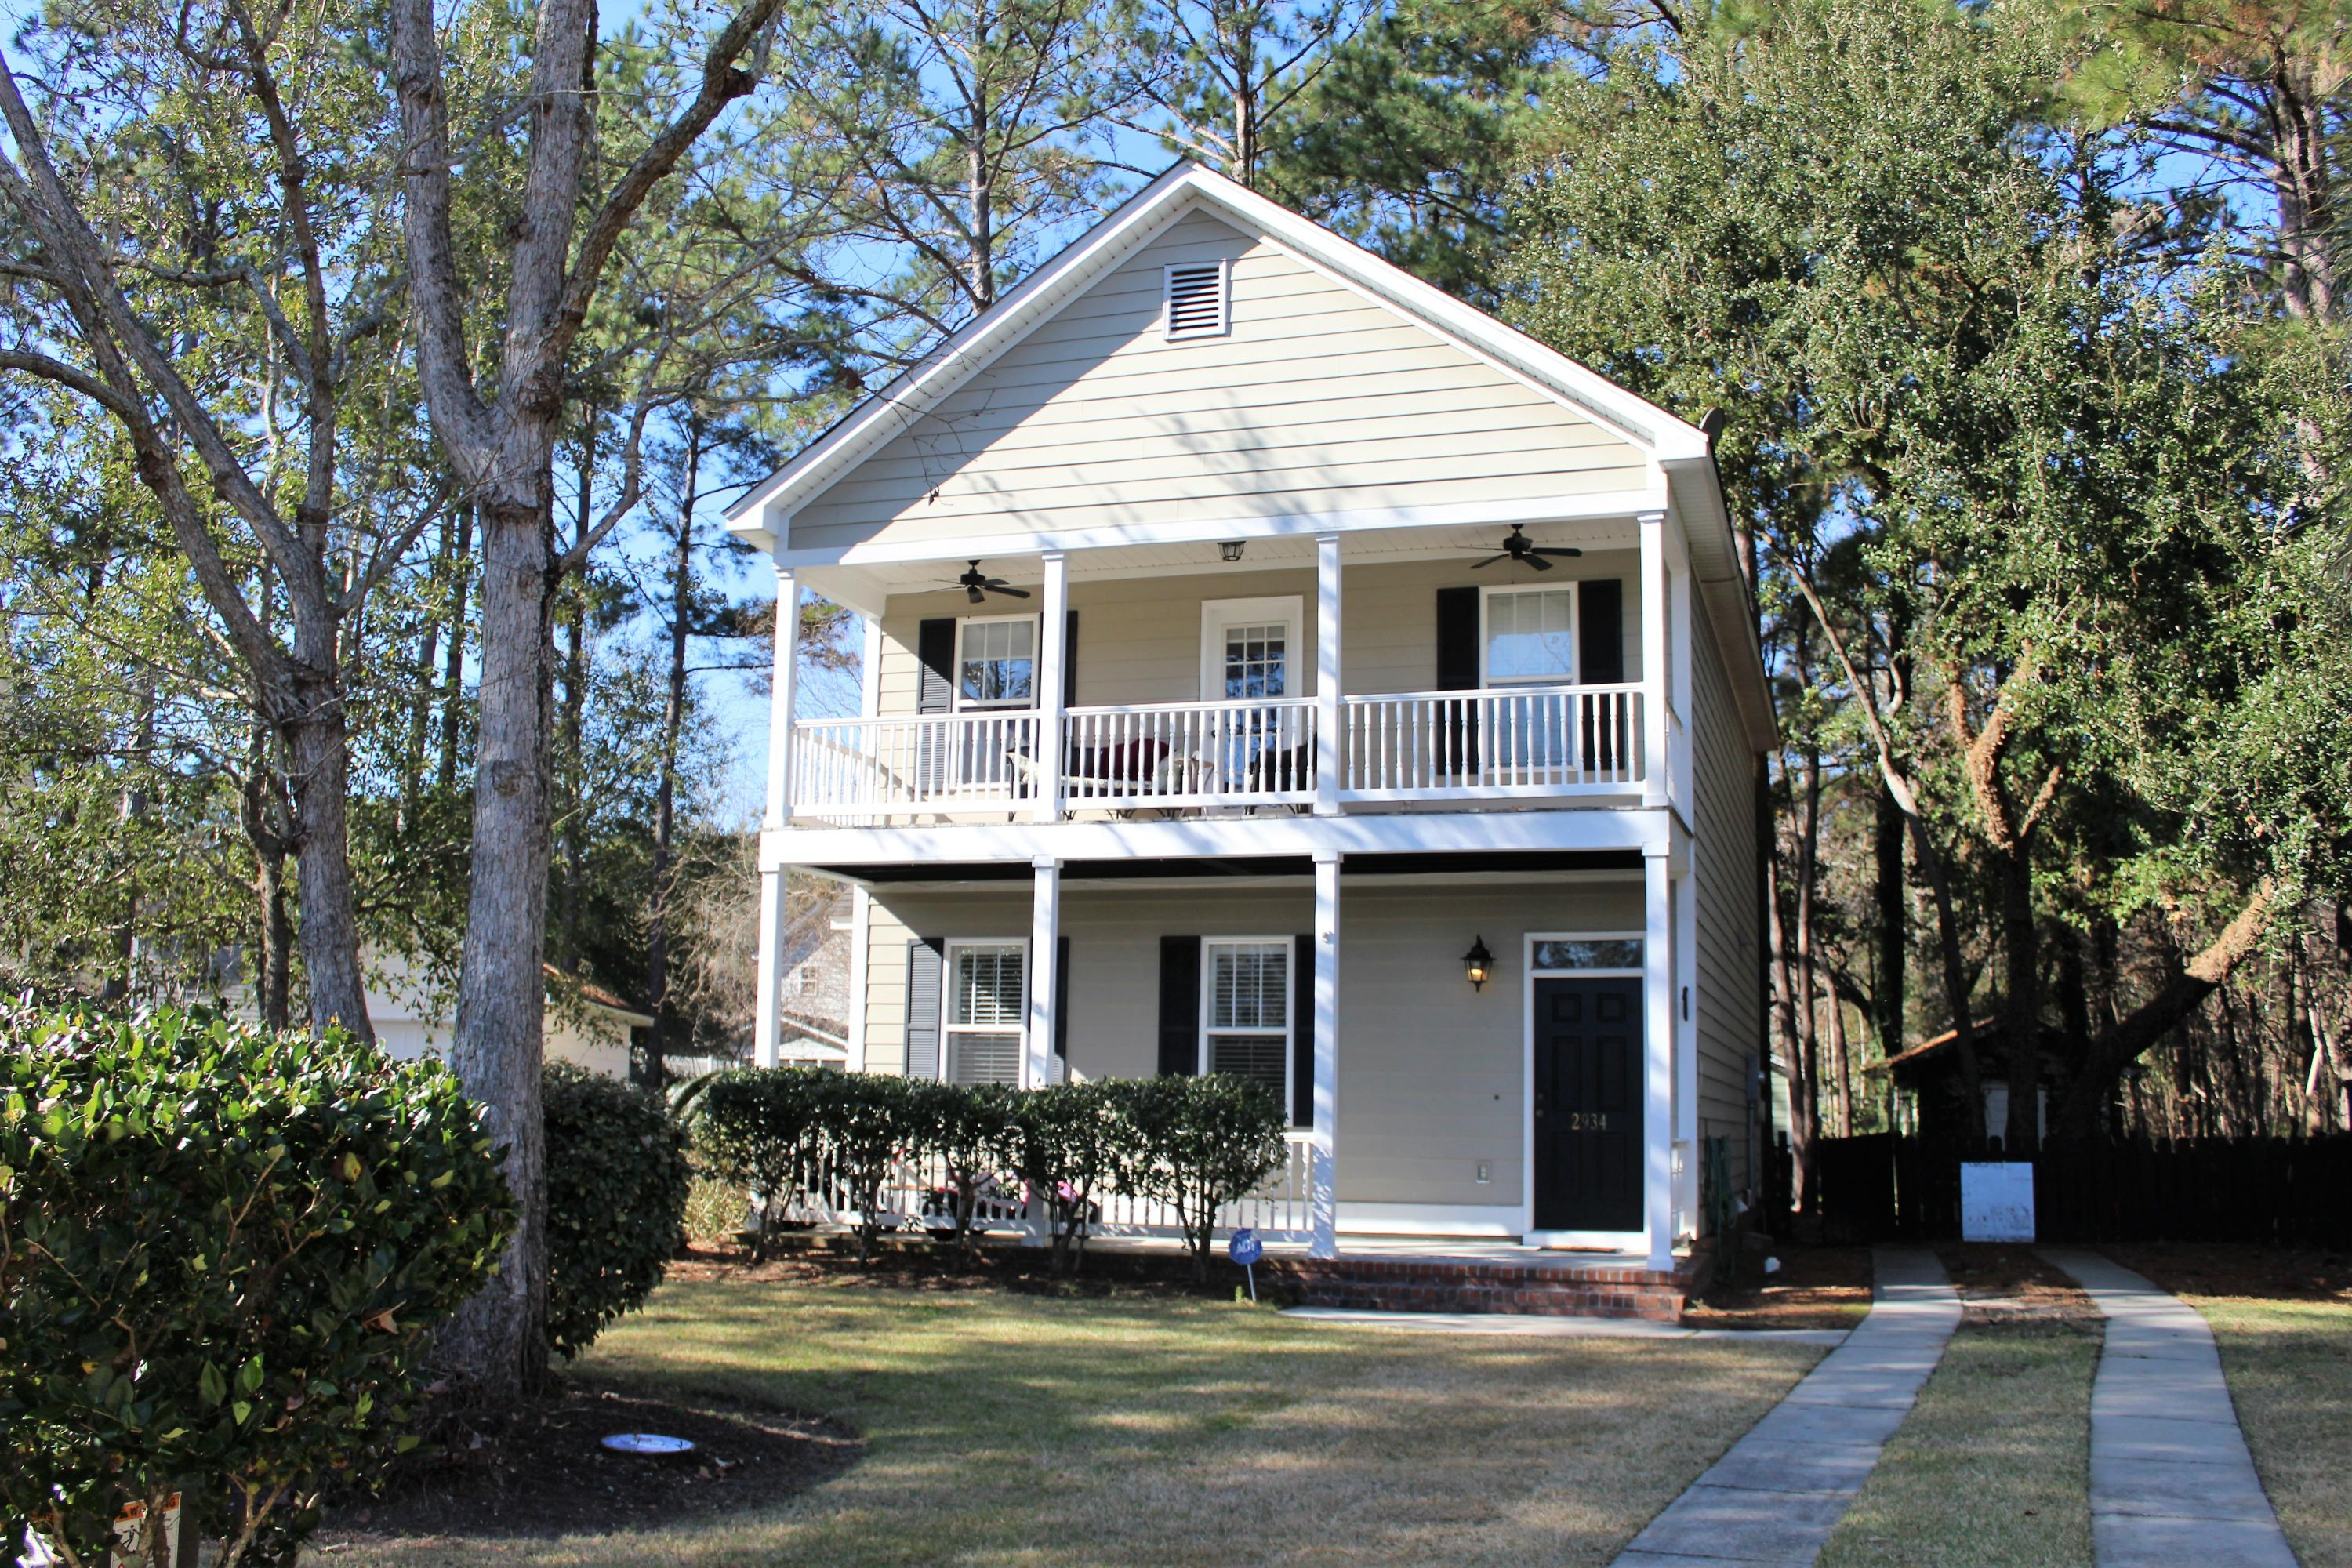 Home for sale 2934 Split Hickory Court, Barberry Woods, Johns Island, SC